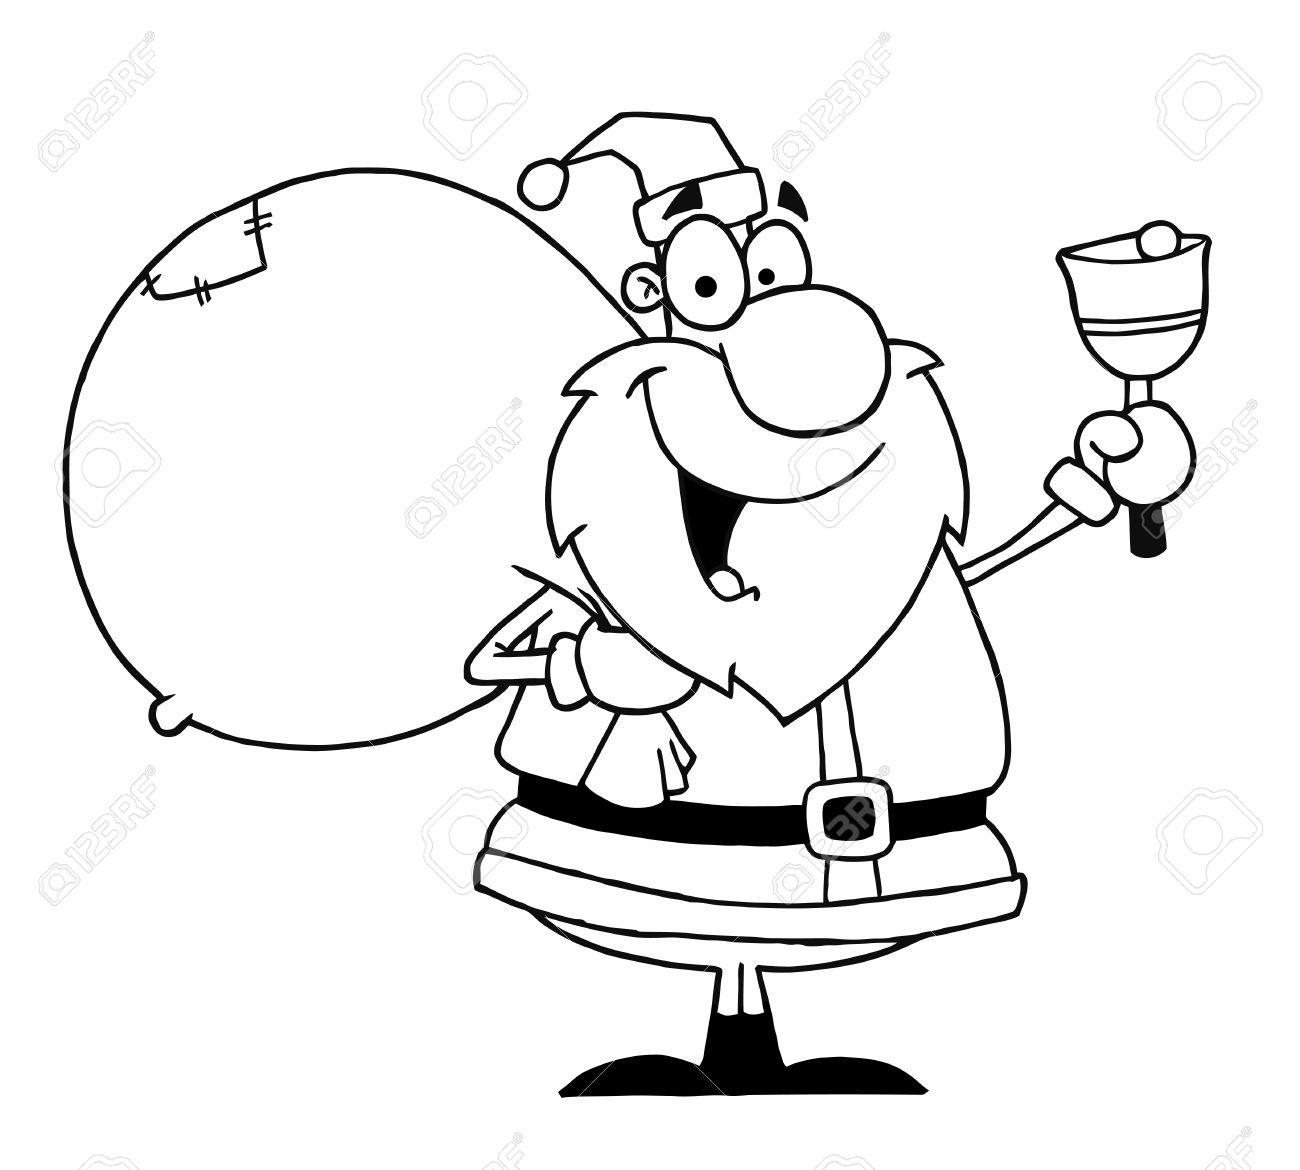 black and white coloring page outline of a santa bell ringer